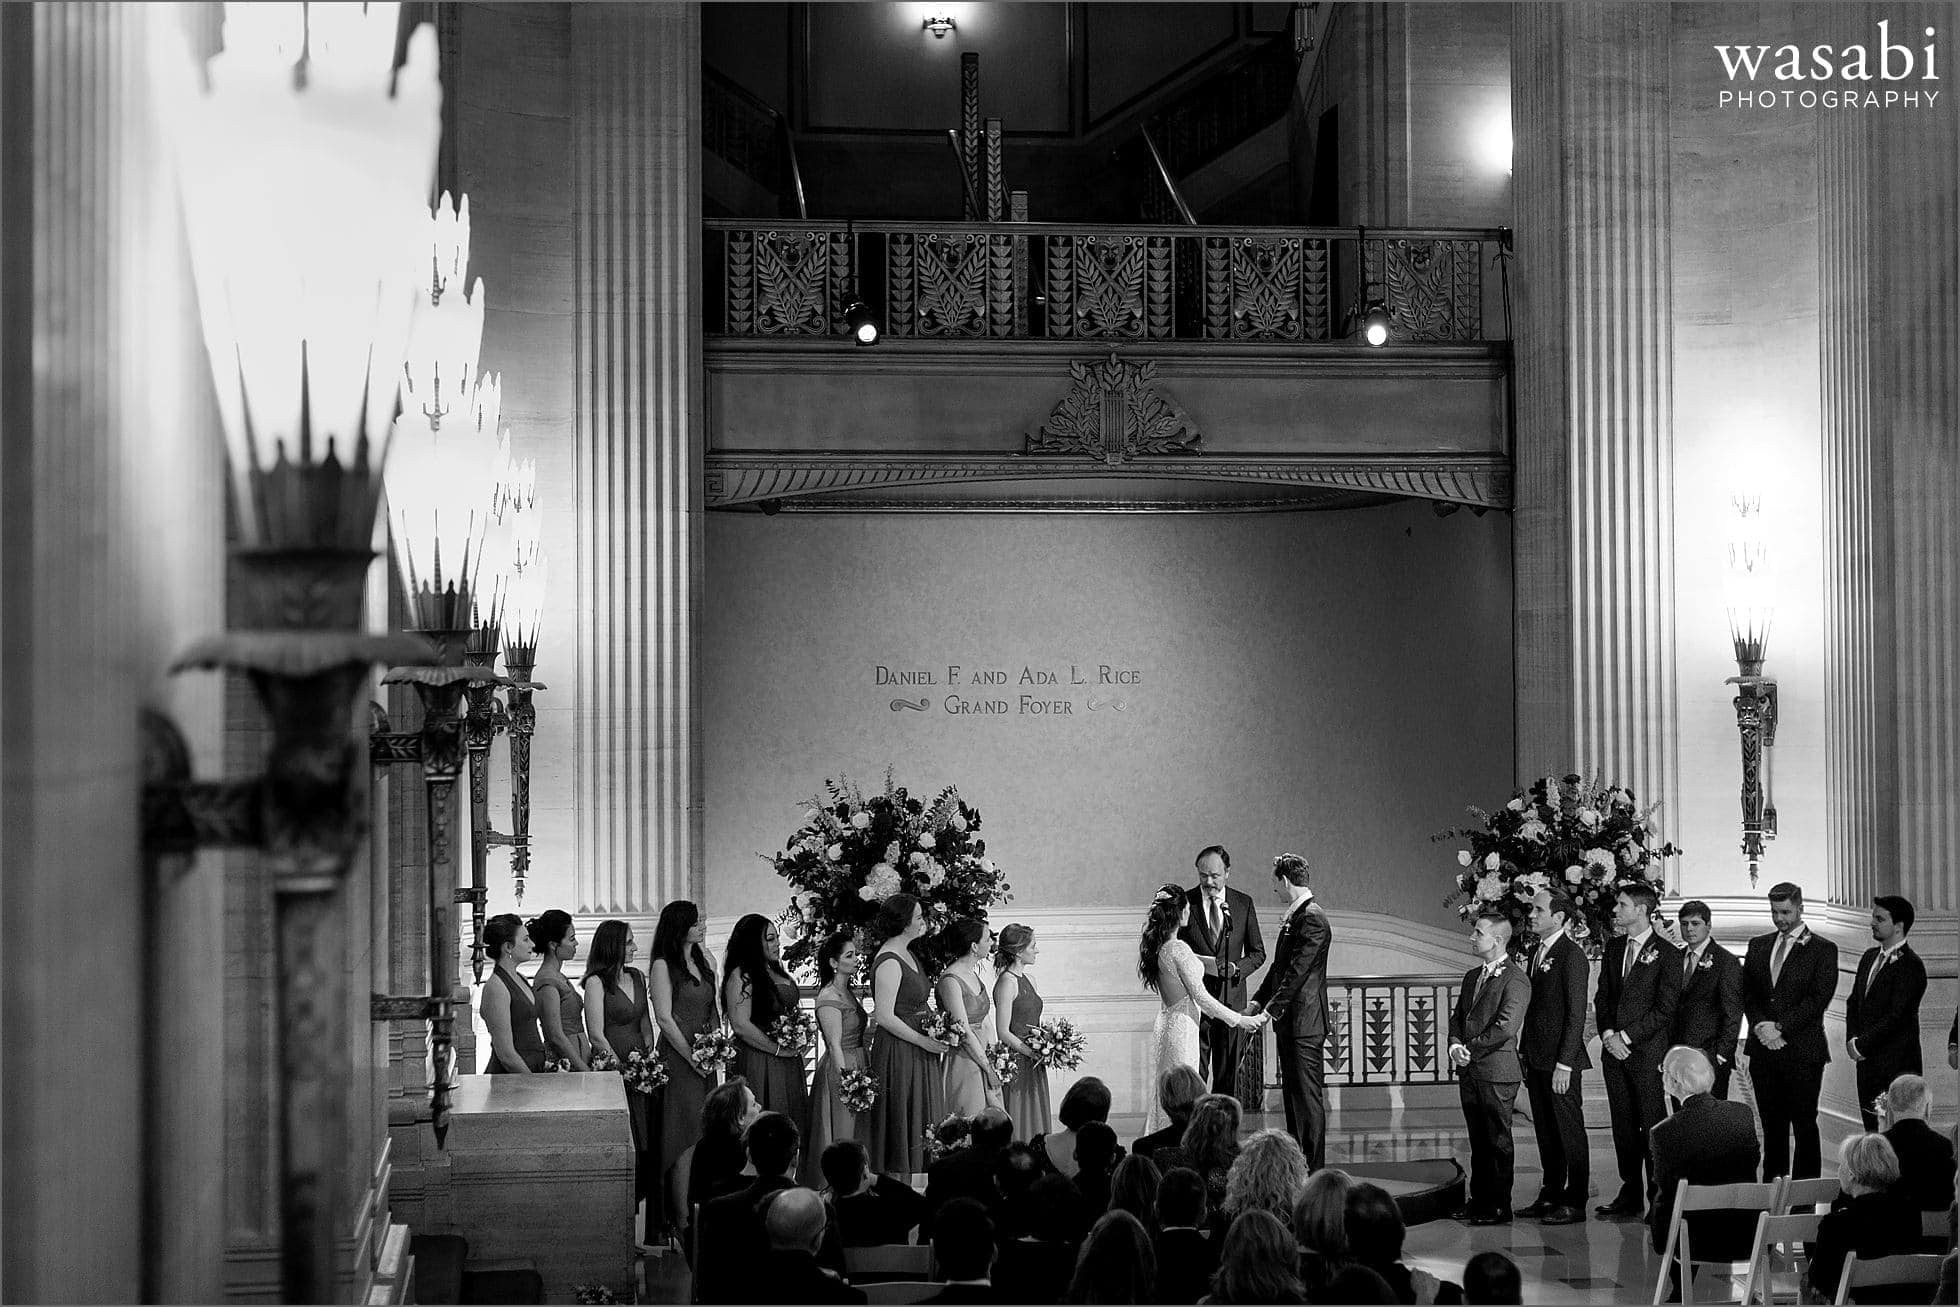 bride and groom hold hands during wedding ceremony at Lyric Opera House Chicago wedding in Daniel F. and Ada L. Rice Grand Foyer